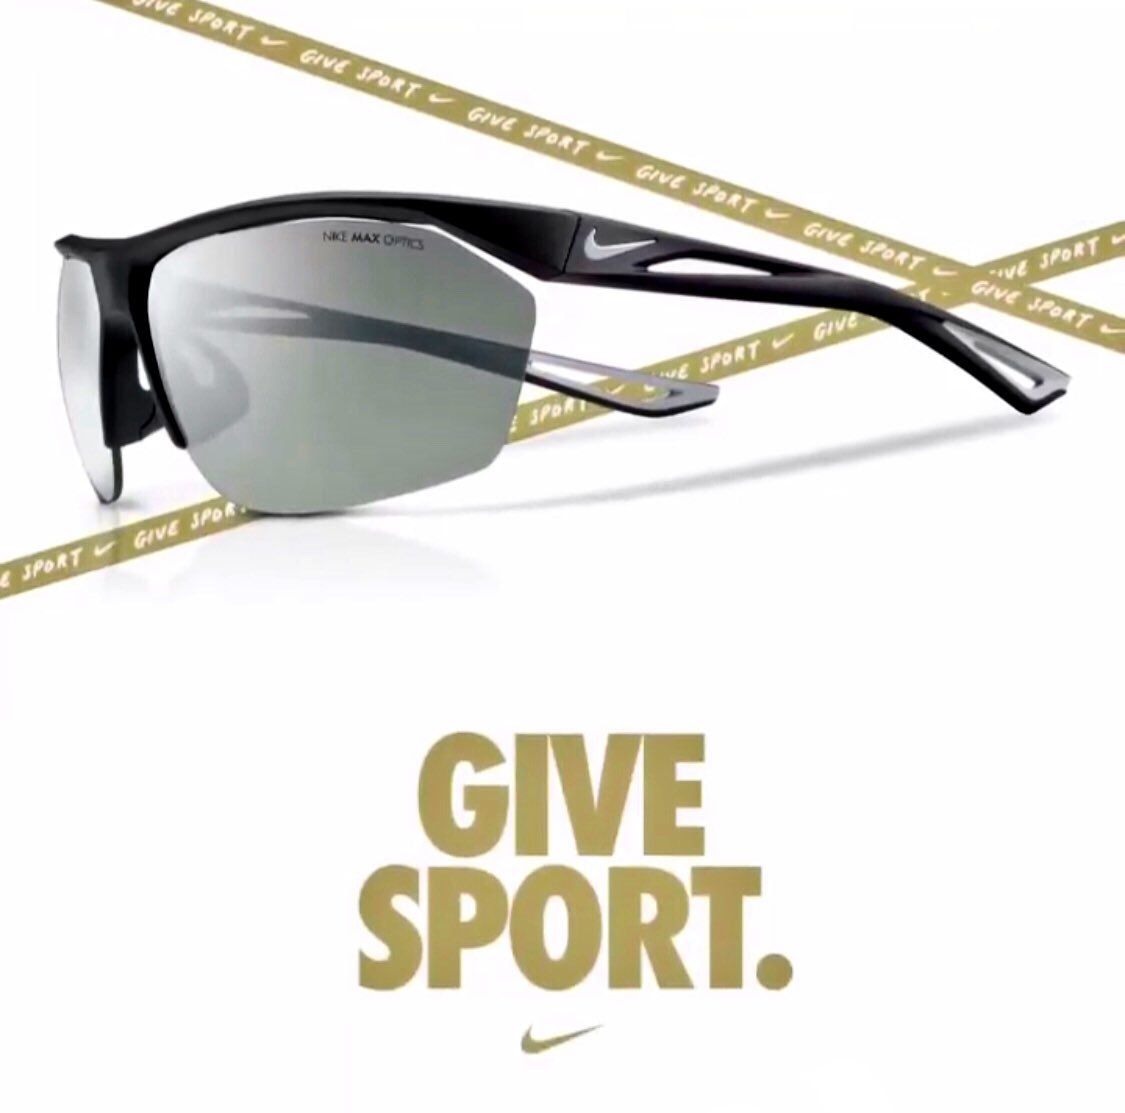 bc2d29f4b2c Nike Vision offers a specific line of running sunglasses to help you get  the most out of your running training.  PrateEye  Nike  Running